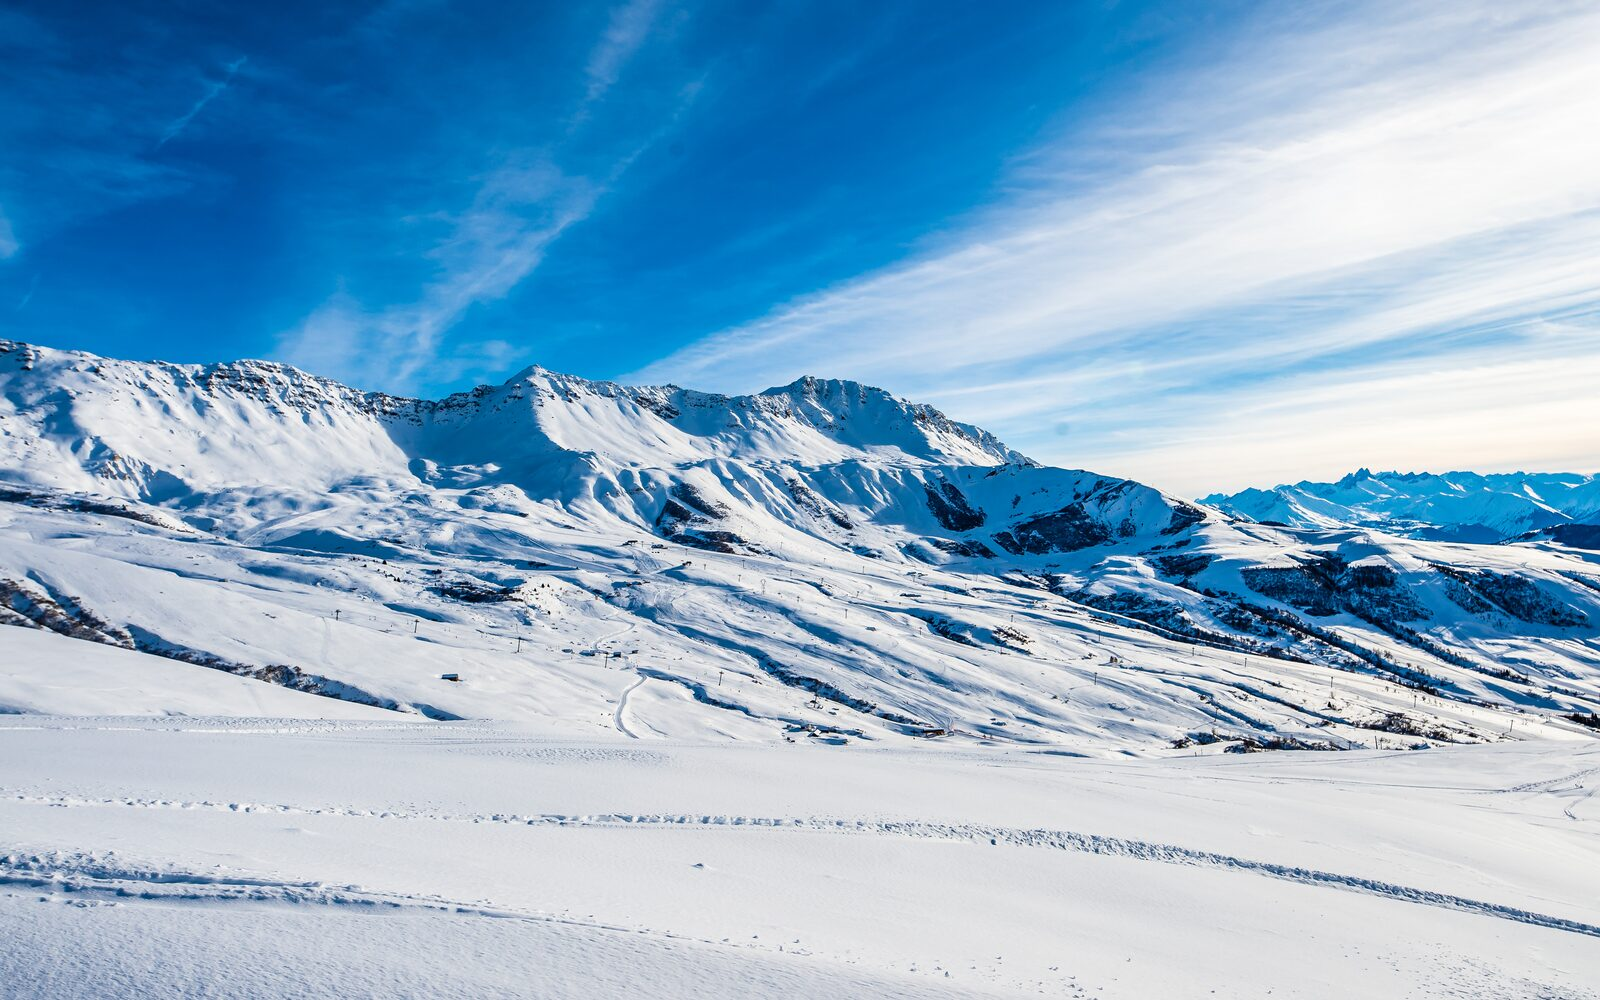 The eight greatest ski slopes of Le Grand Domaine